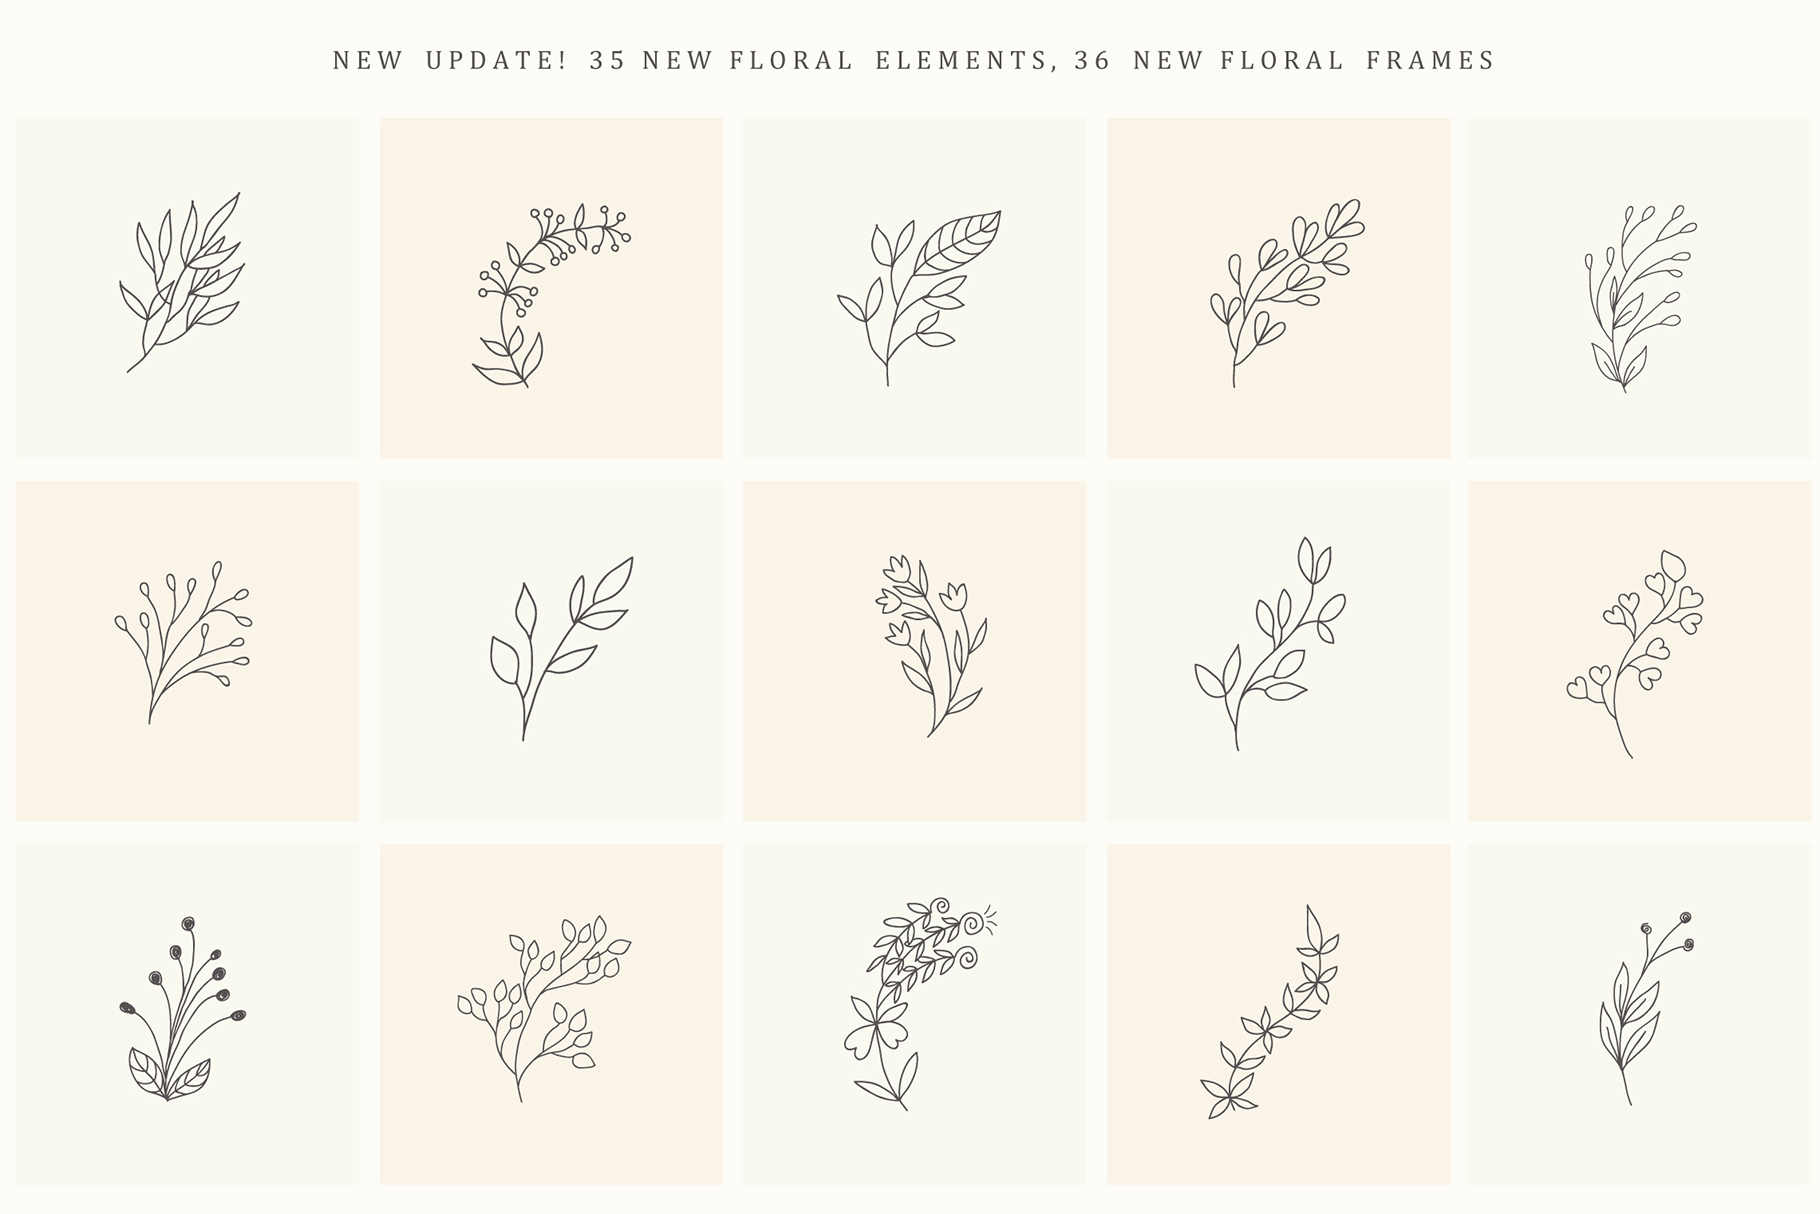 200 Hand Drawn Floral Elements And Frames